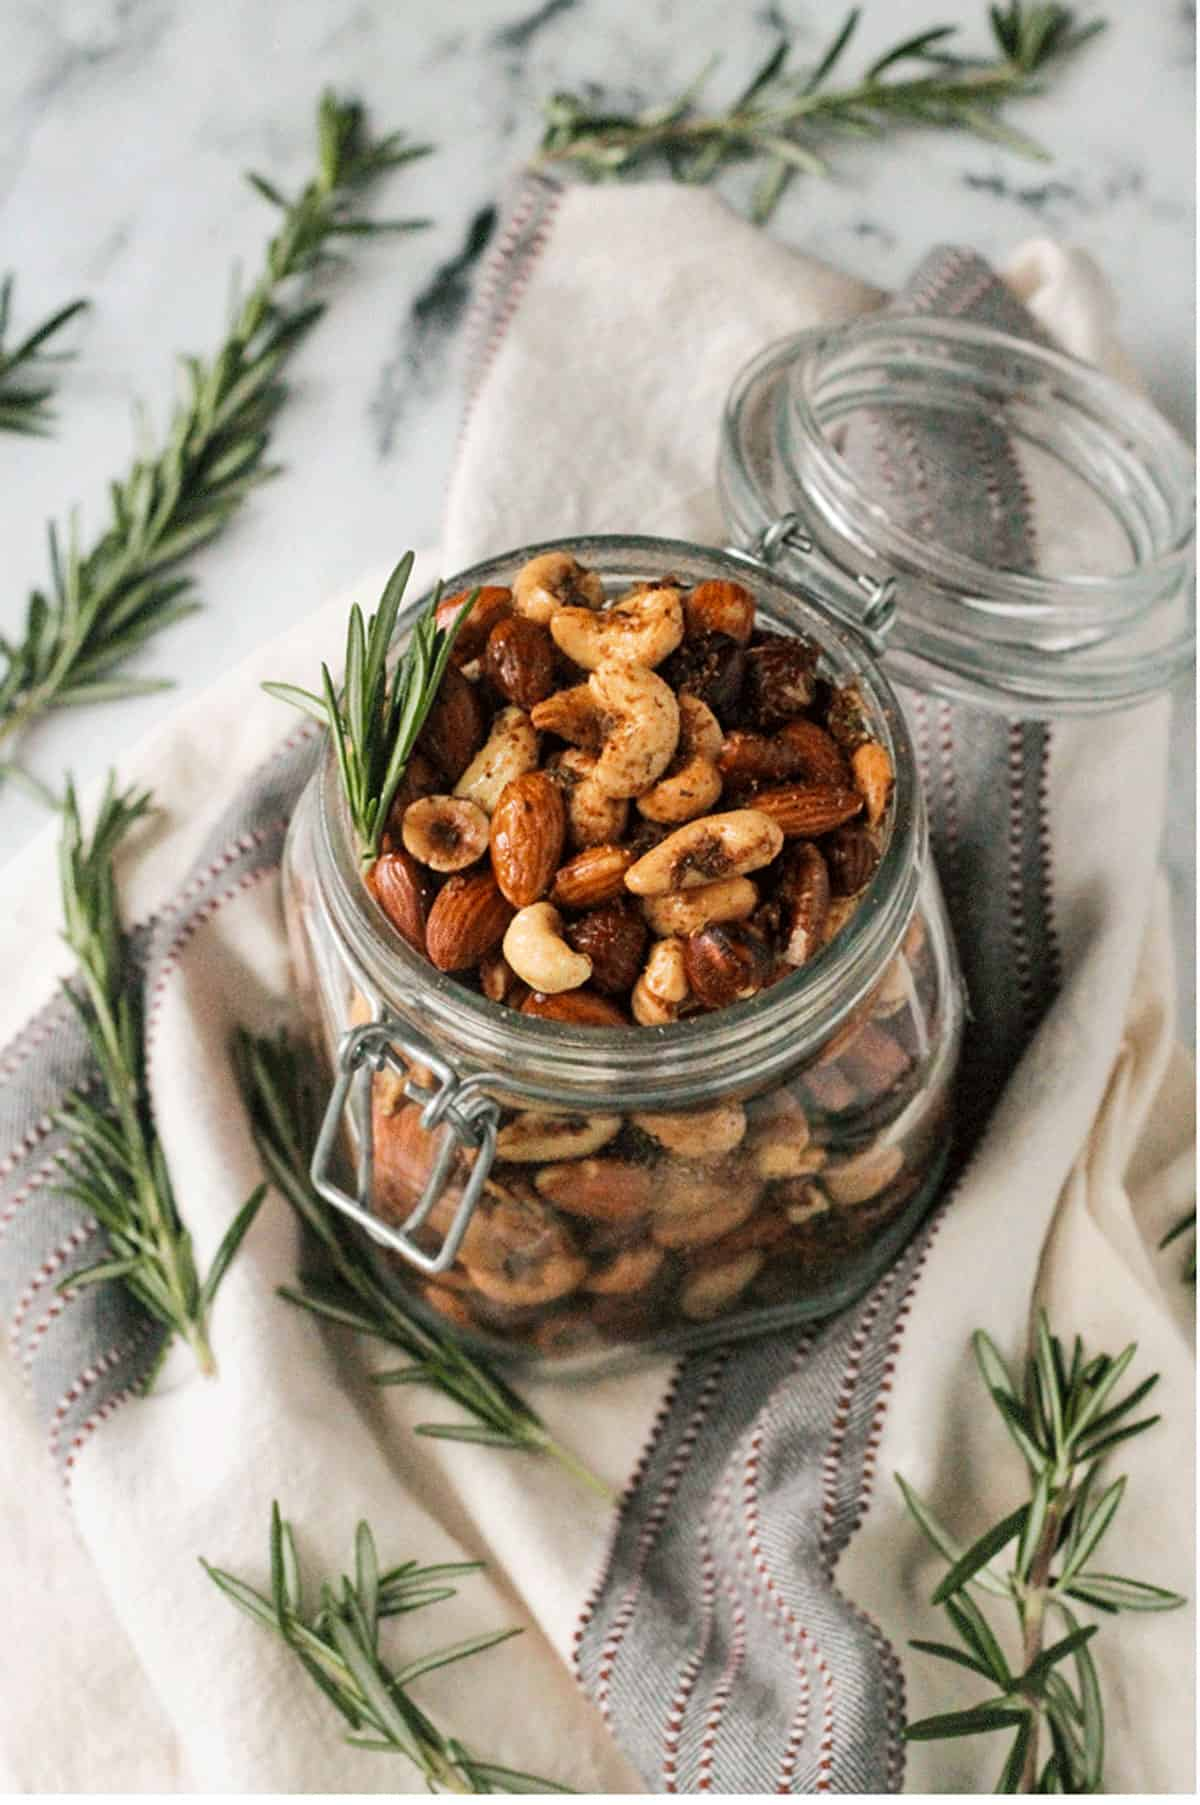 Overhead view of Spiced Roasted Nuts in an open mason jar.